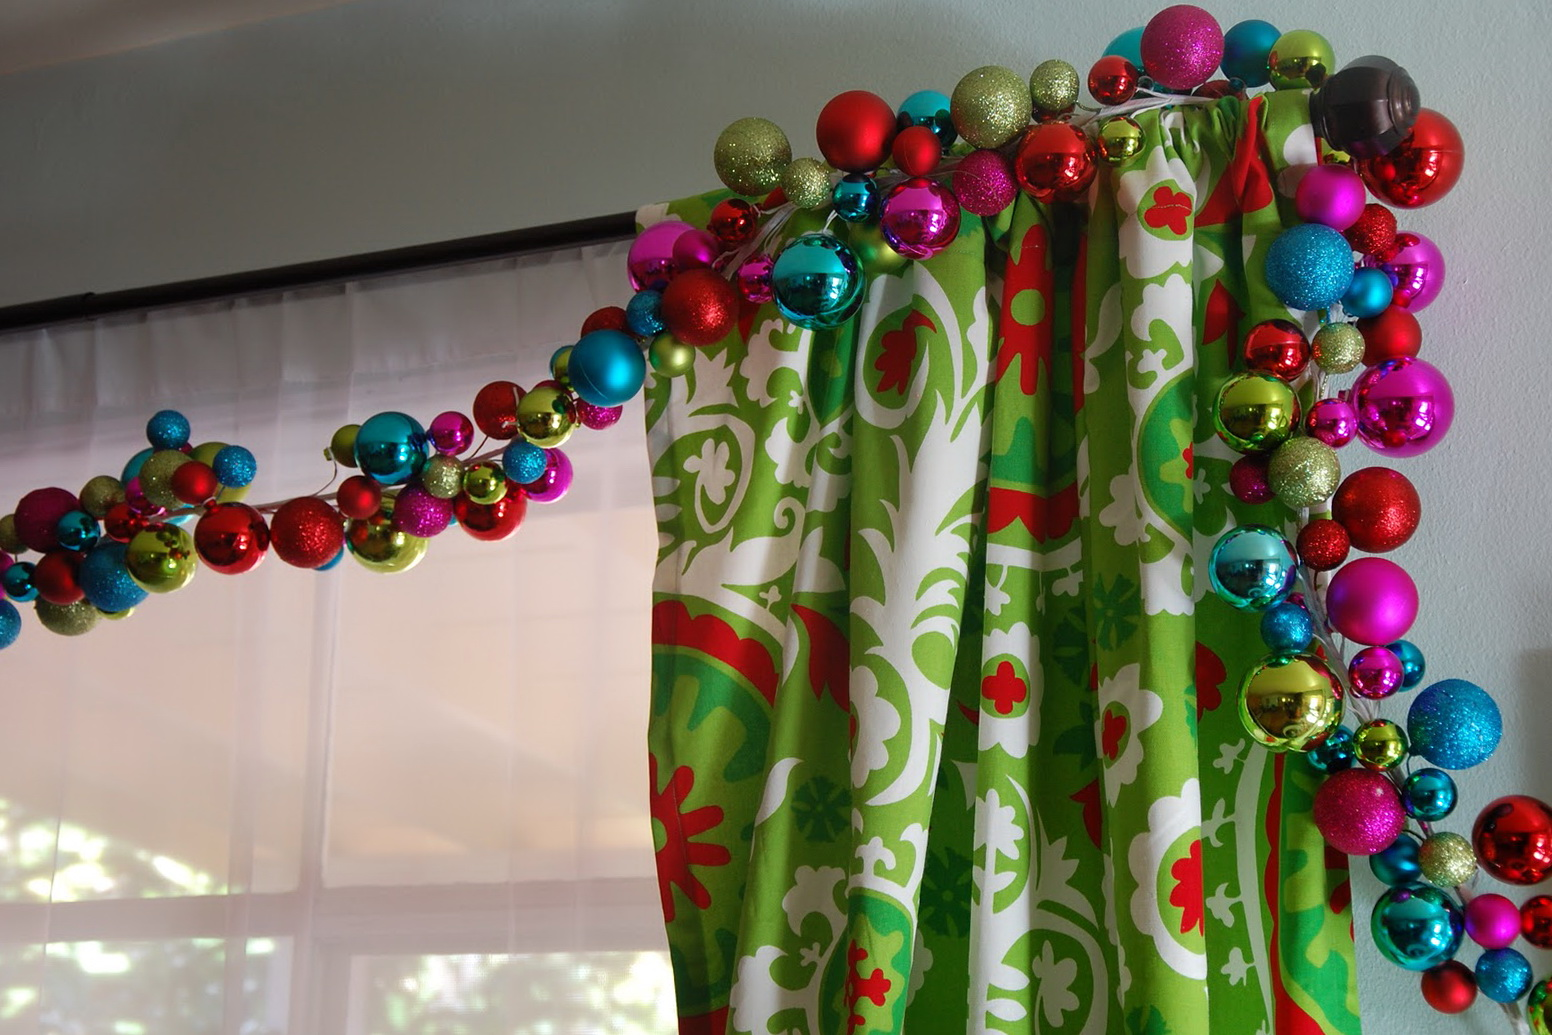 Cortinas Salon 2016 Ideas Para Decorar Cortinas En Navidad 2016